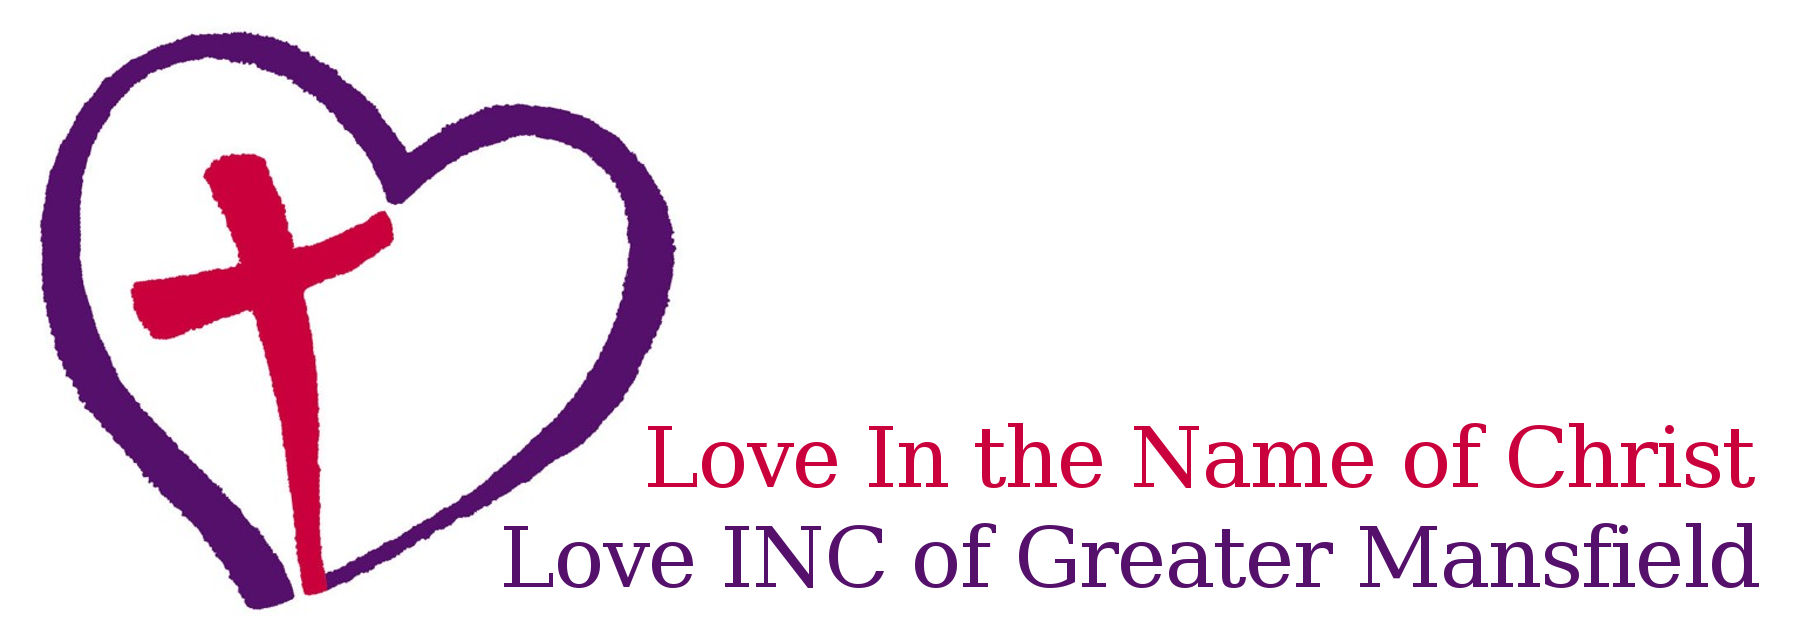 Love INC of Greater Mansfield